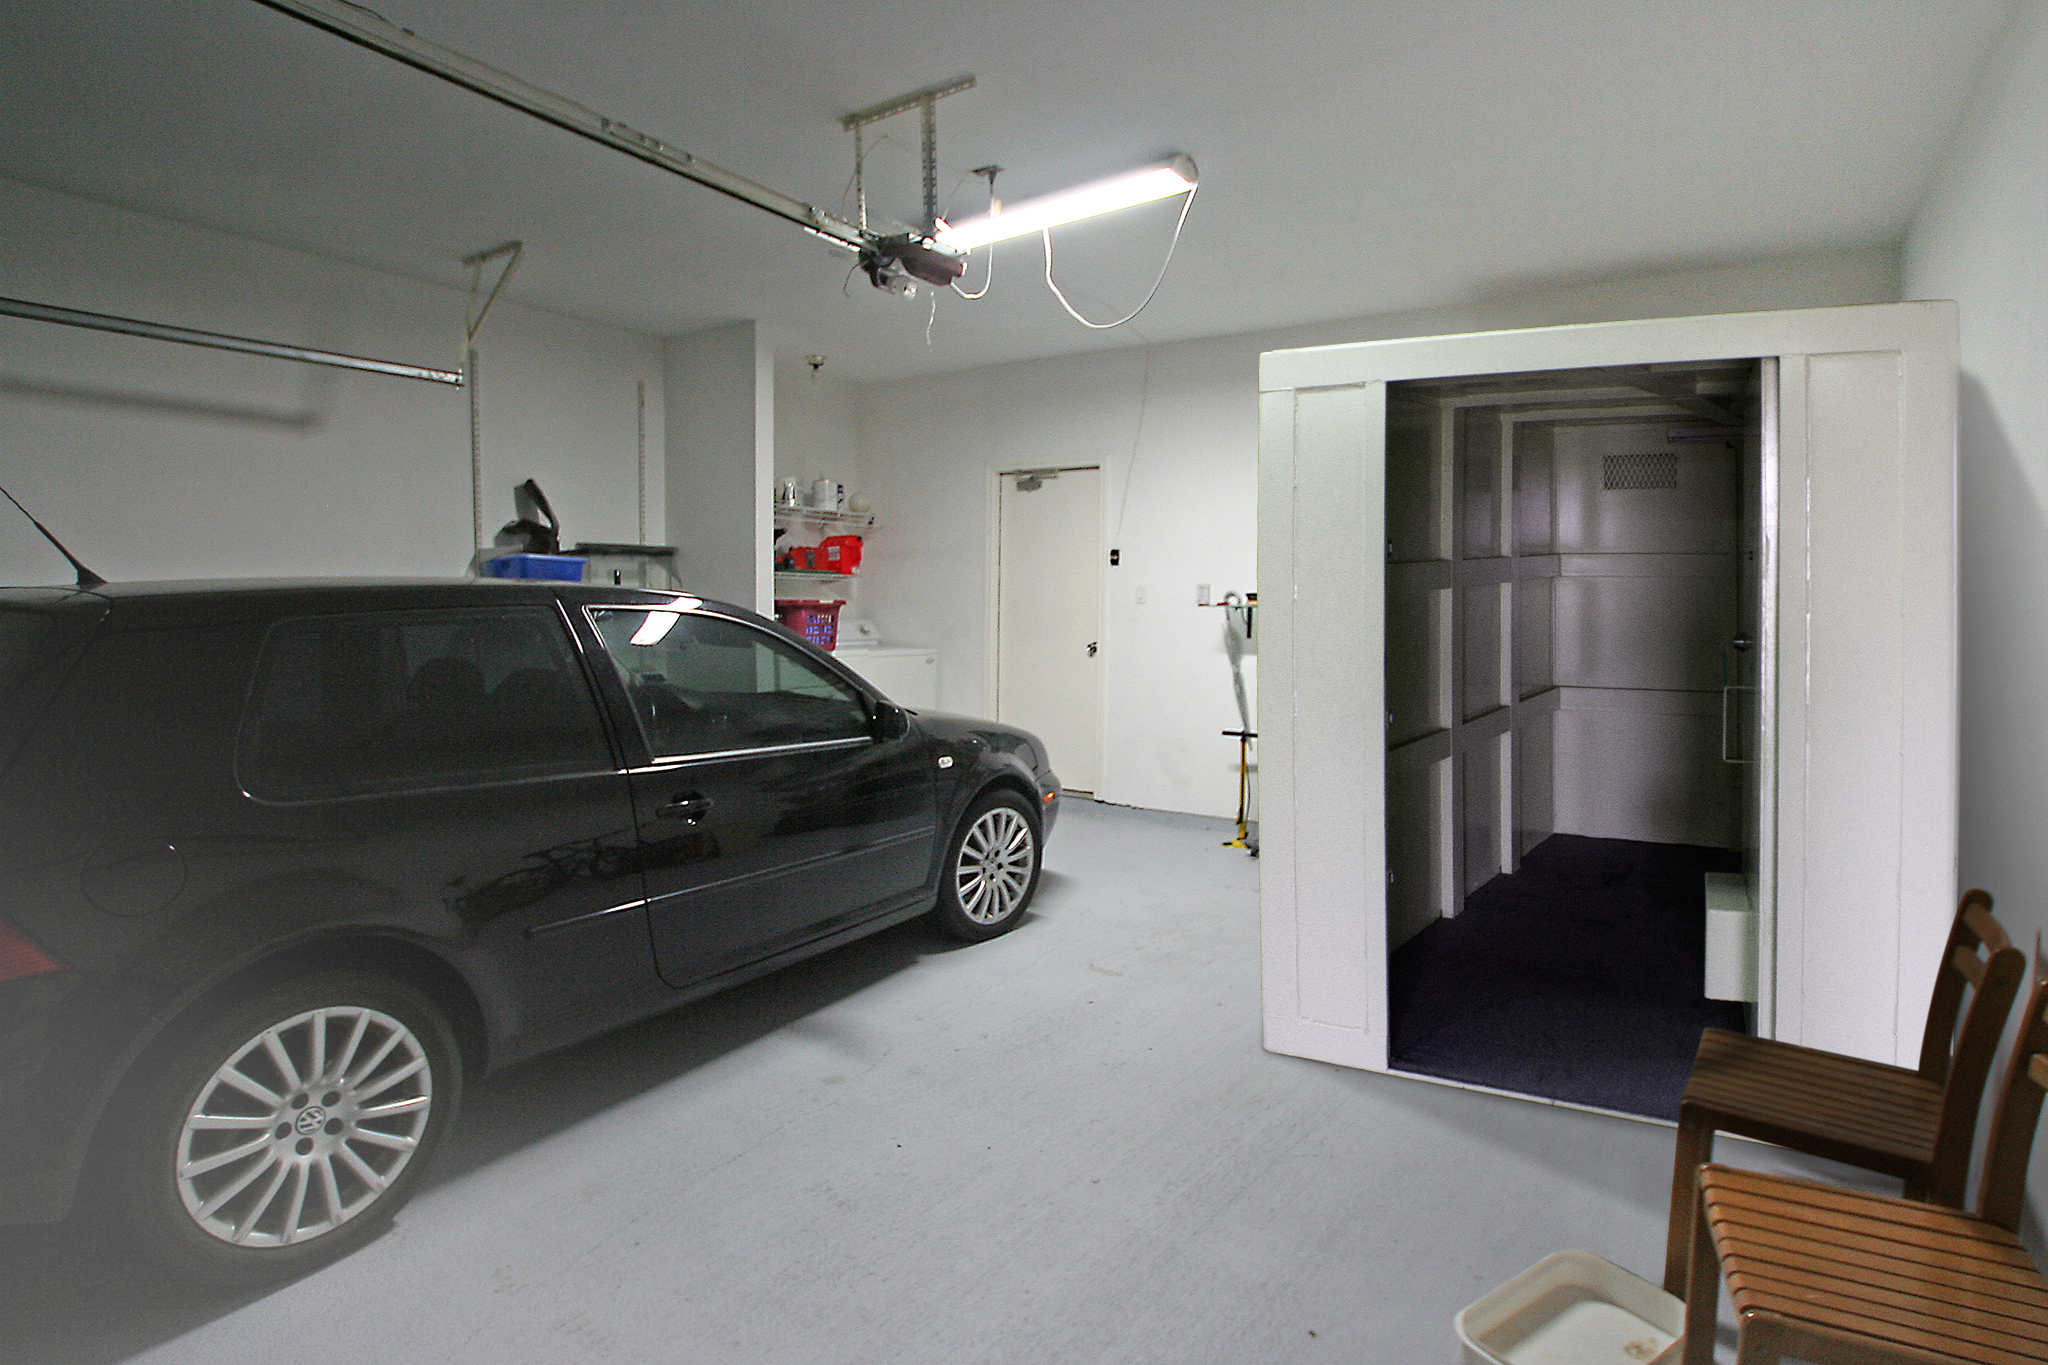 Car parked next to a safe room